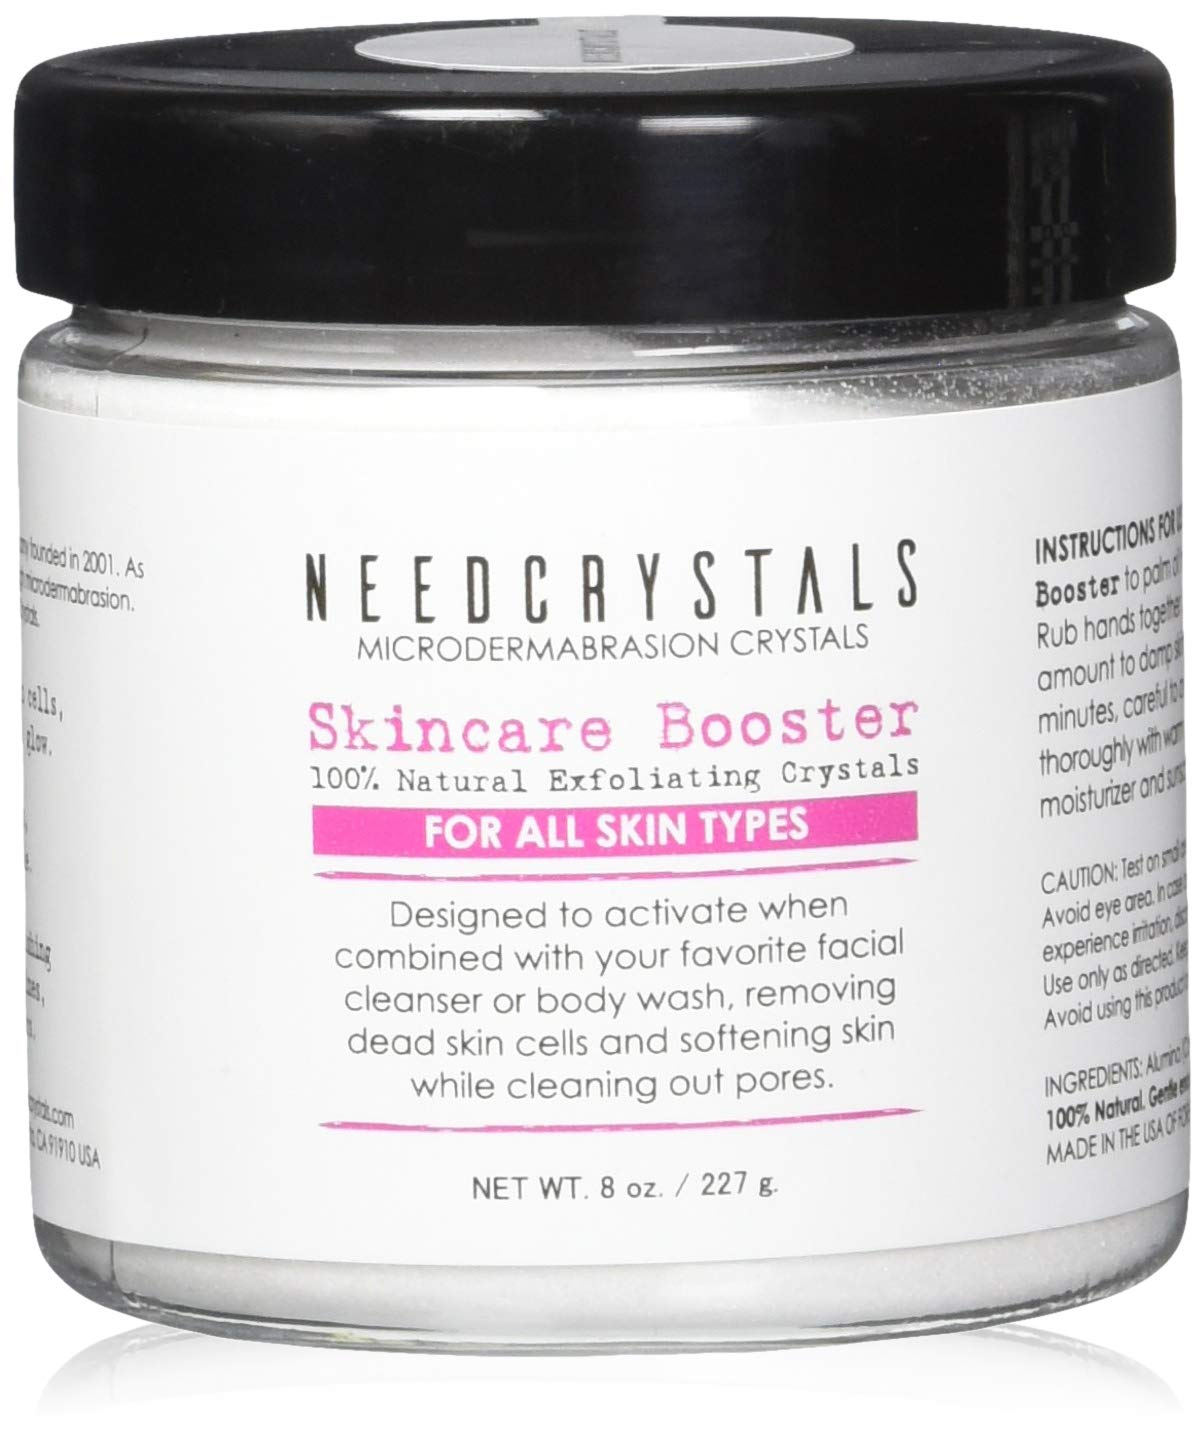 NeedCrystals Microdermabrasion Crystals 8 oz. / 227 gr. DIY Face Scrub. Natural Facial Exfoliator for Dull or Dry Skin Improves Acne Scars, Blackheads, Pore Size, Wrinkles, Blemishes & Skin Texture by NeedCrystals